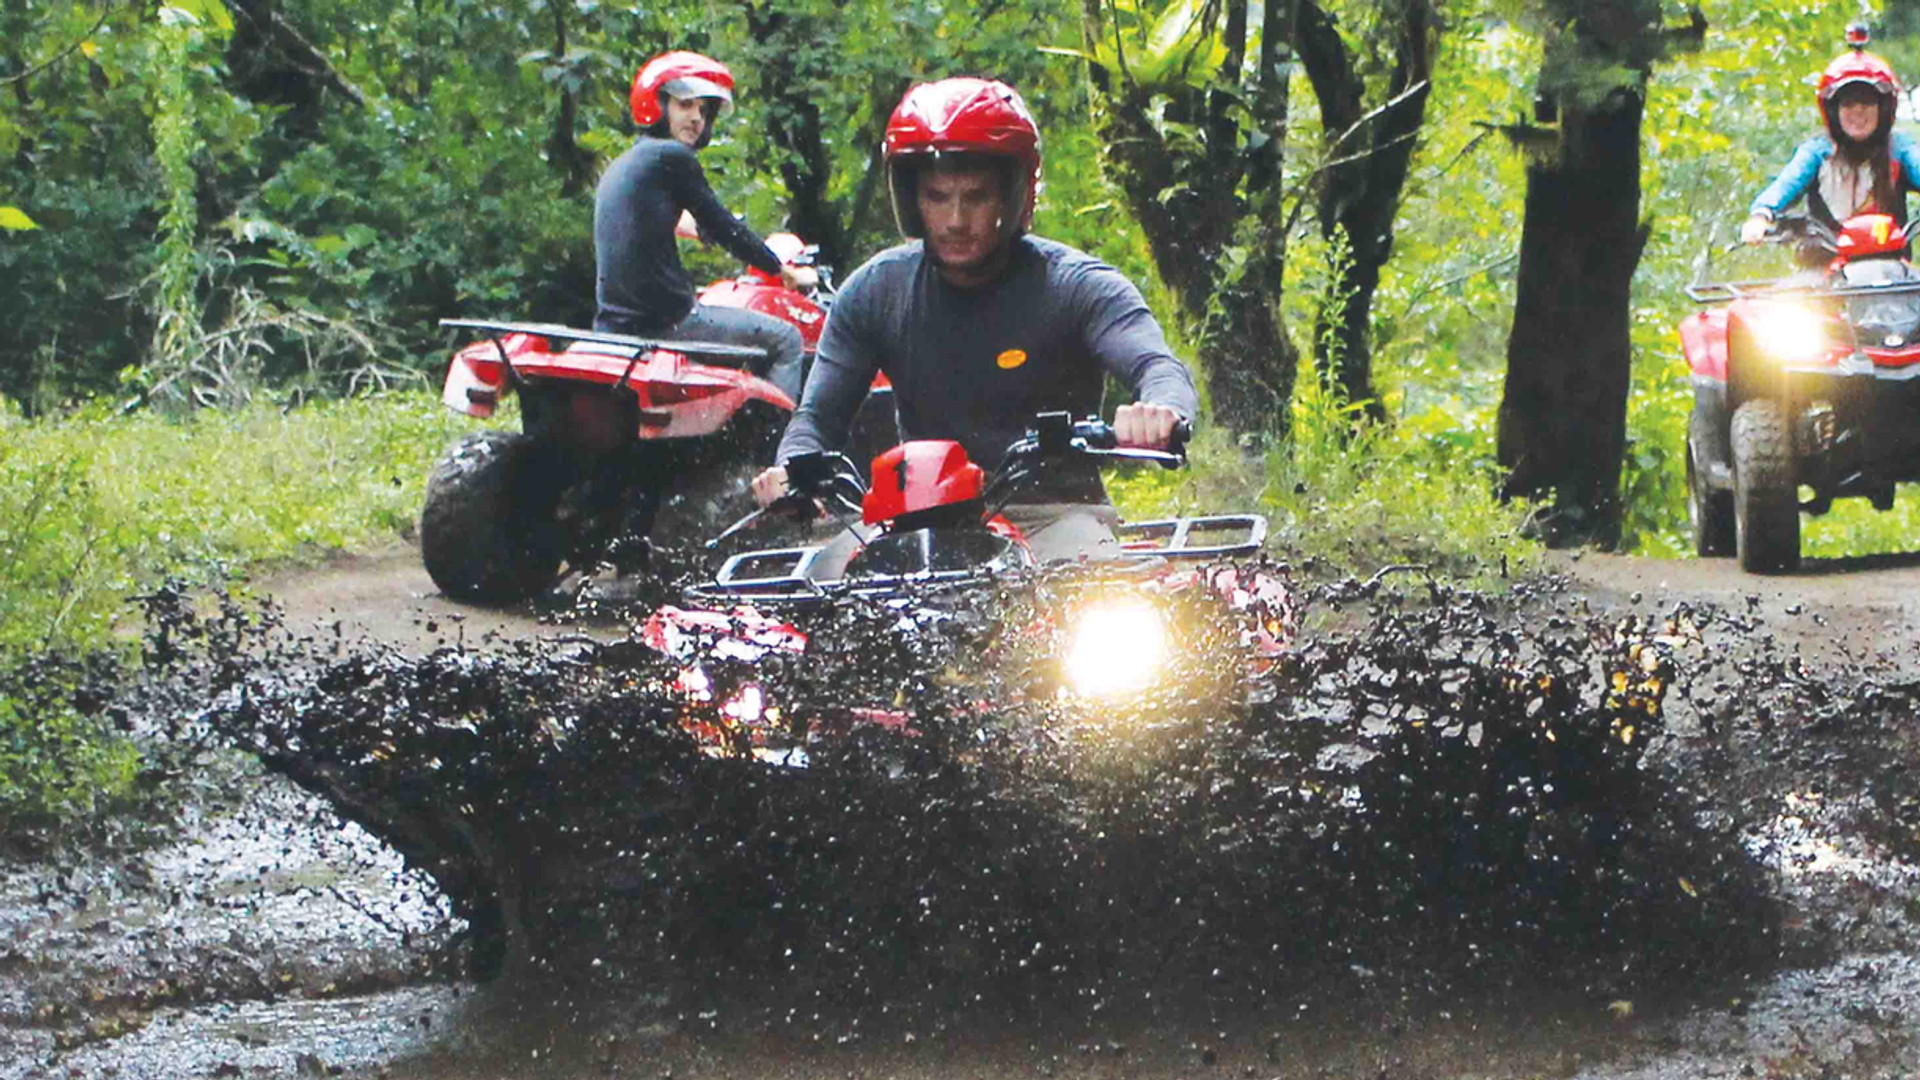 Monteverde Costa Rica ATV adventure tour group driving through mud